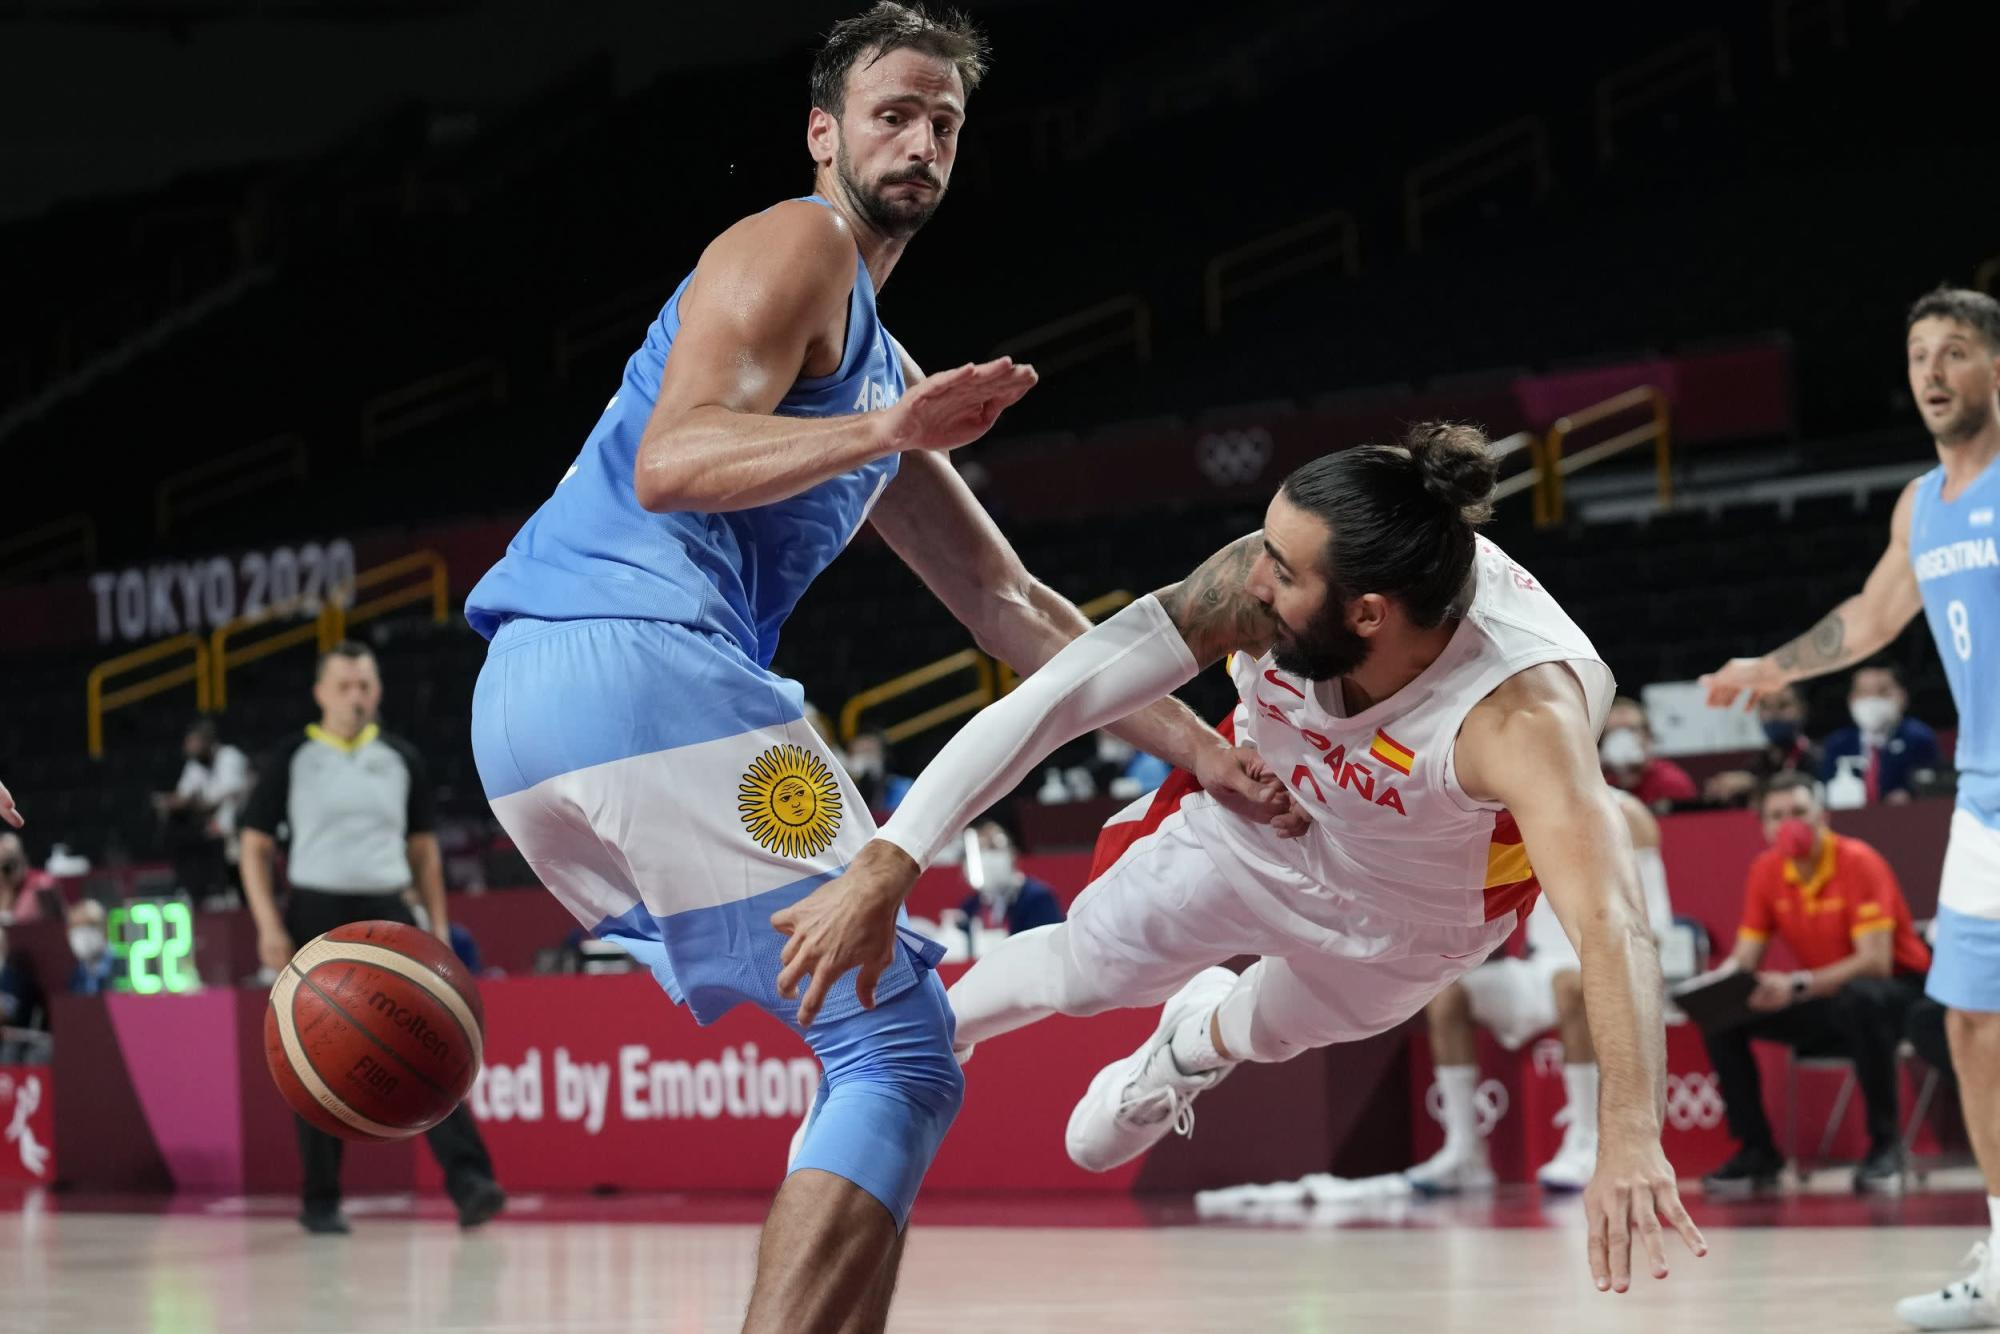 1627577578 Tokyo 2020 the Argentine basketball team collided with Spain and